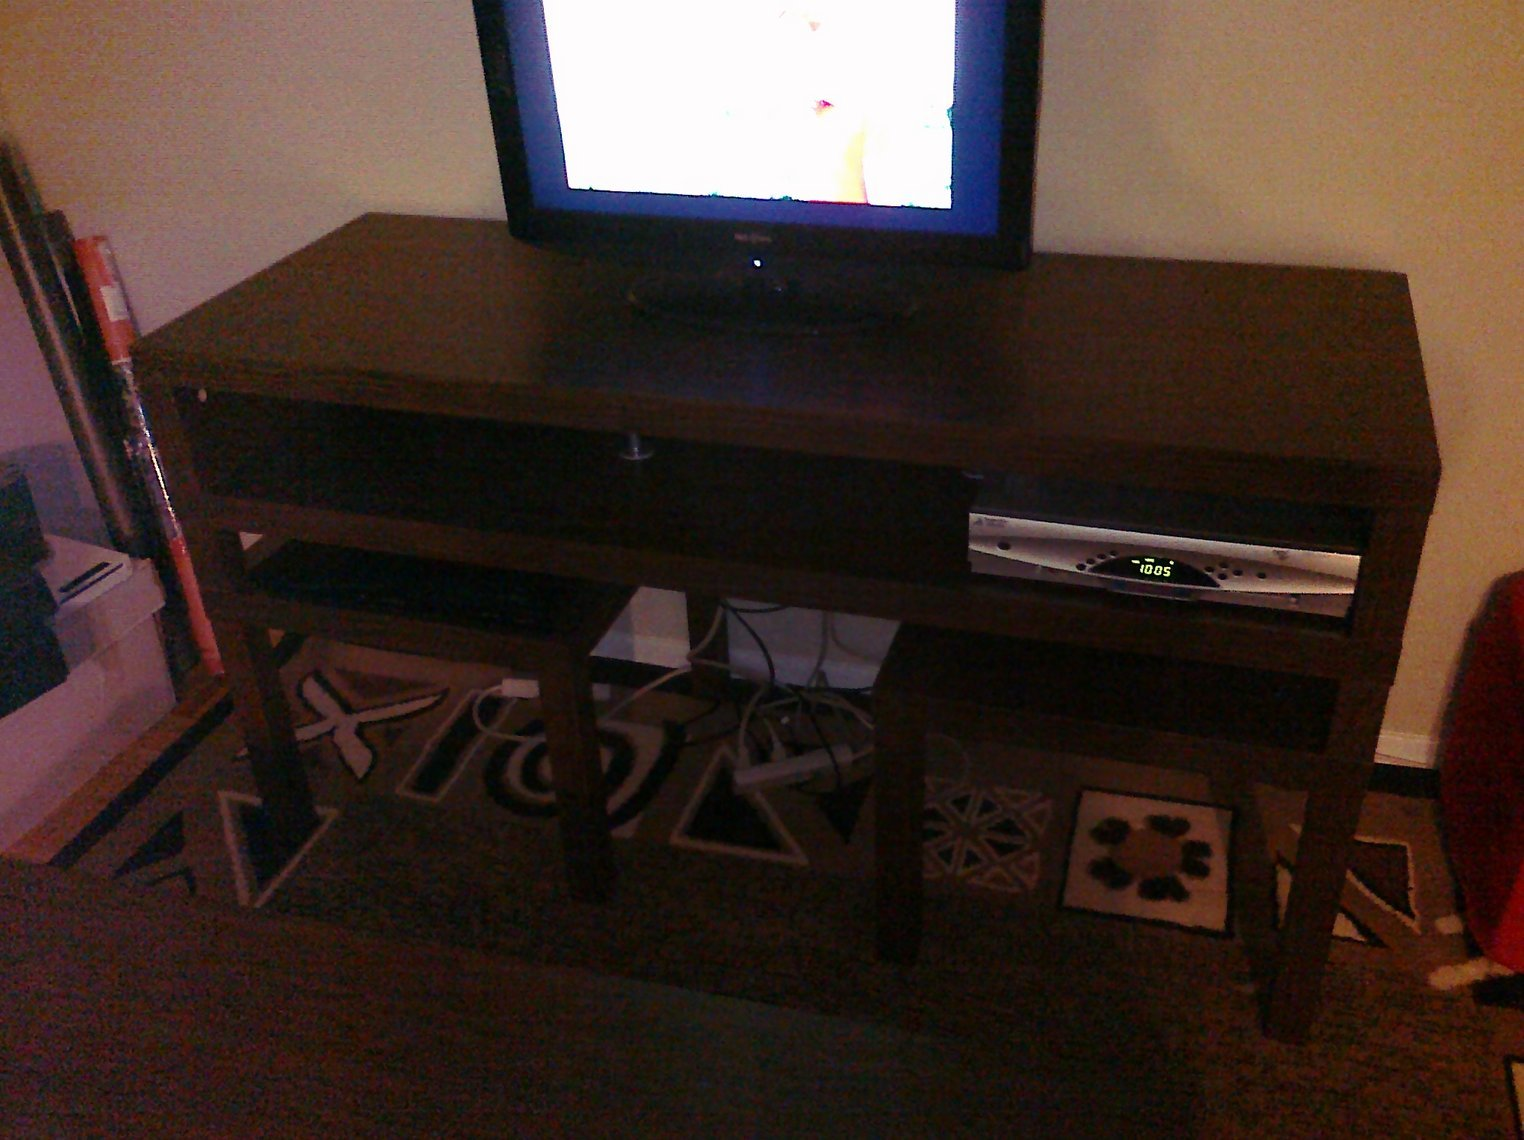 Strange Hacka Lack A Mutant Tv Stand Ikea Hackers Gamerscity Chair Design For Home Gamerscityorg